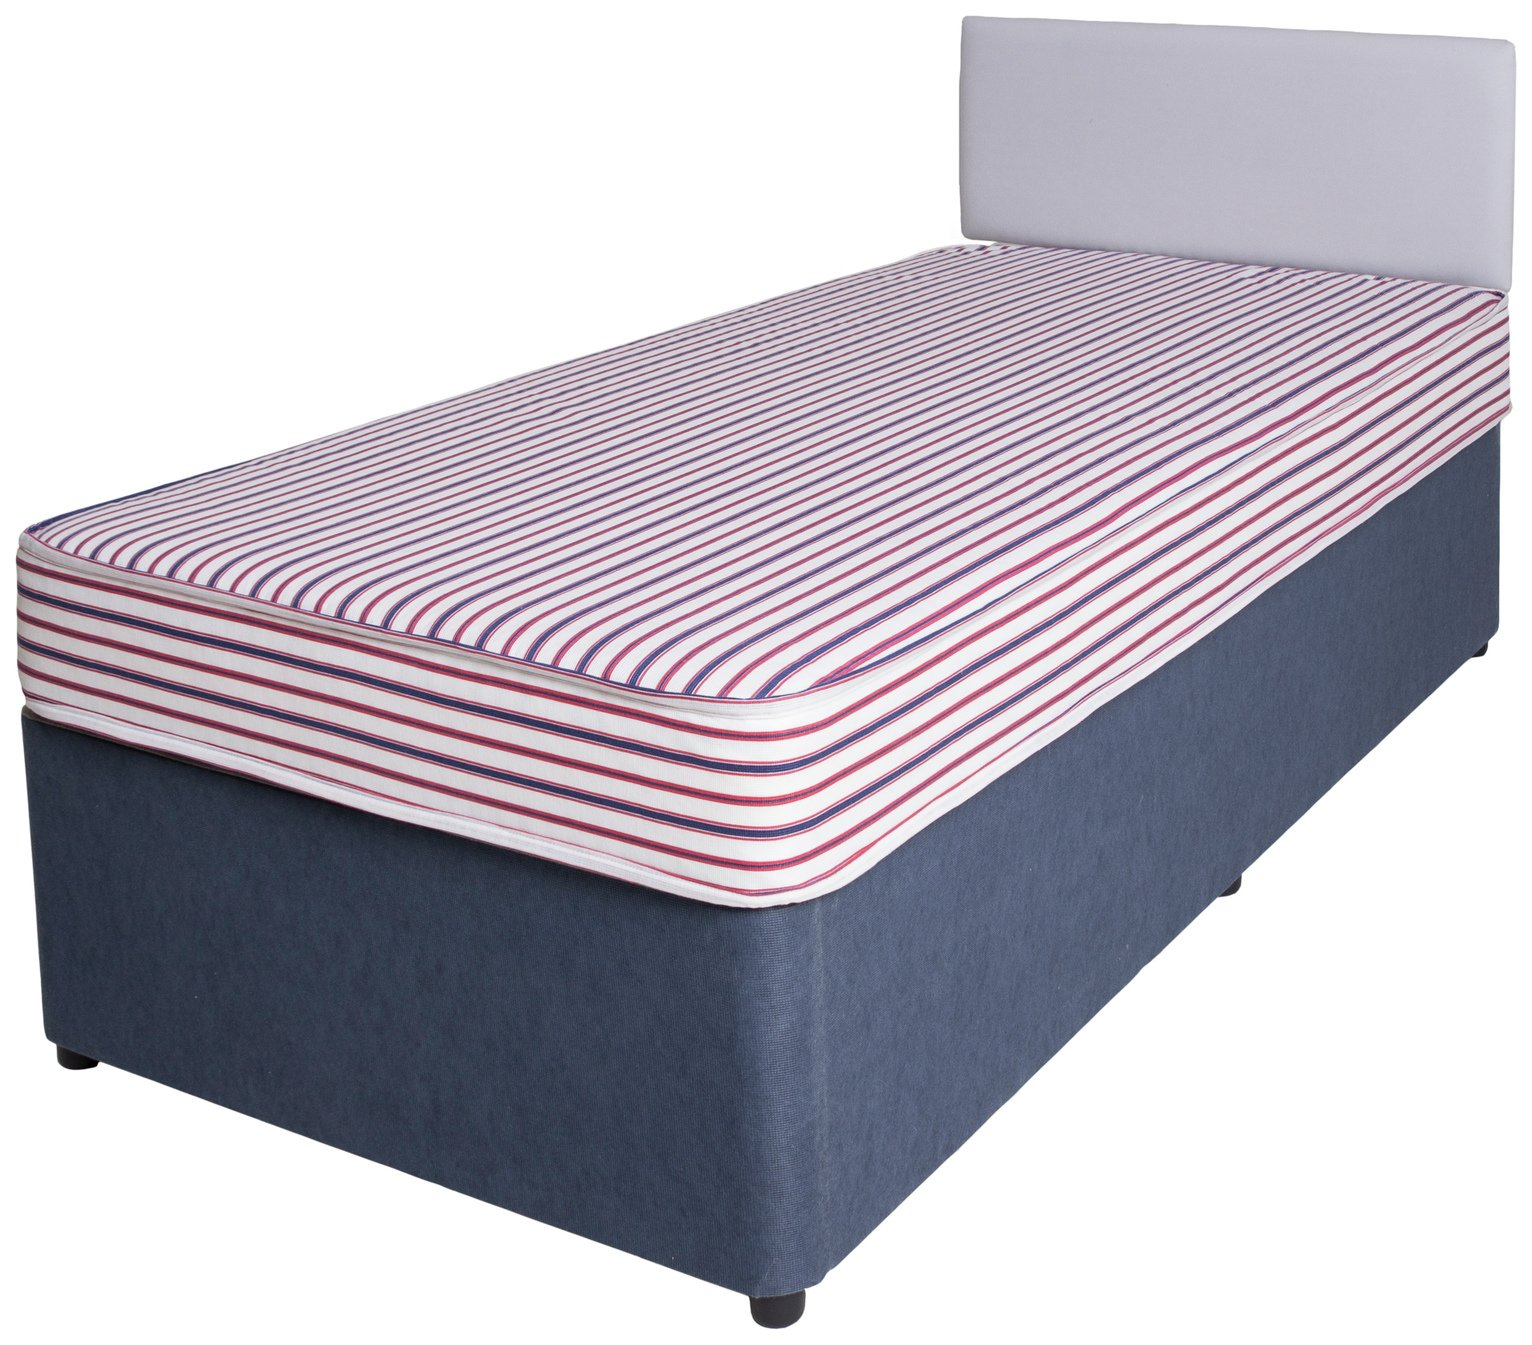 Forty Winks Bibby Basic Single Divan Bed with Mattress